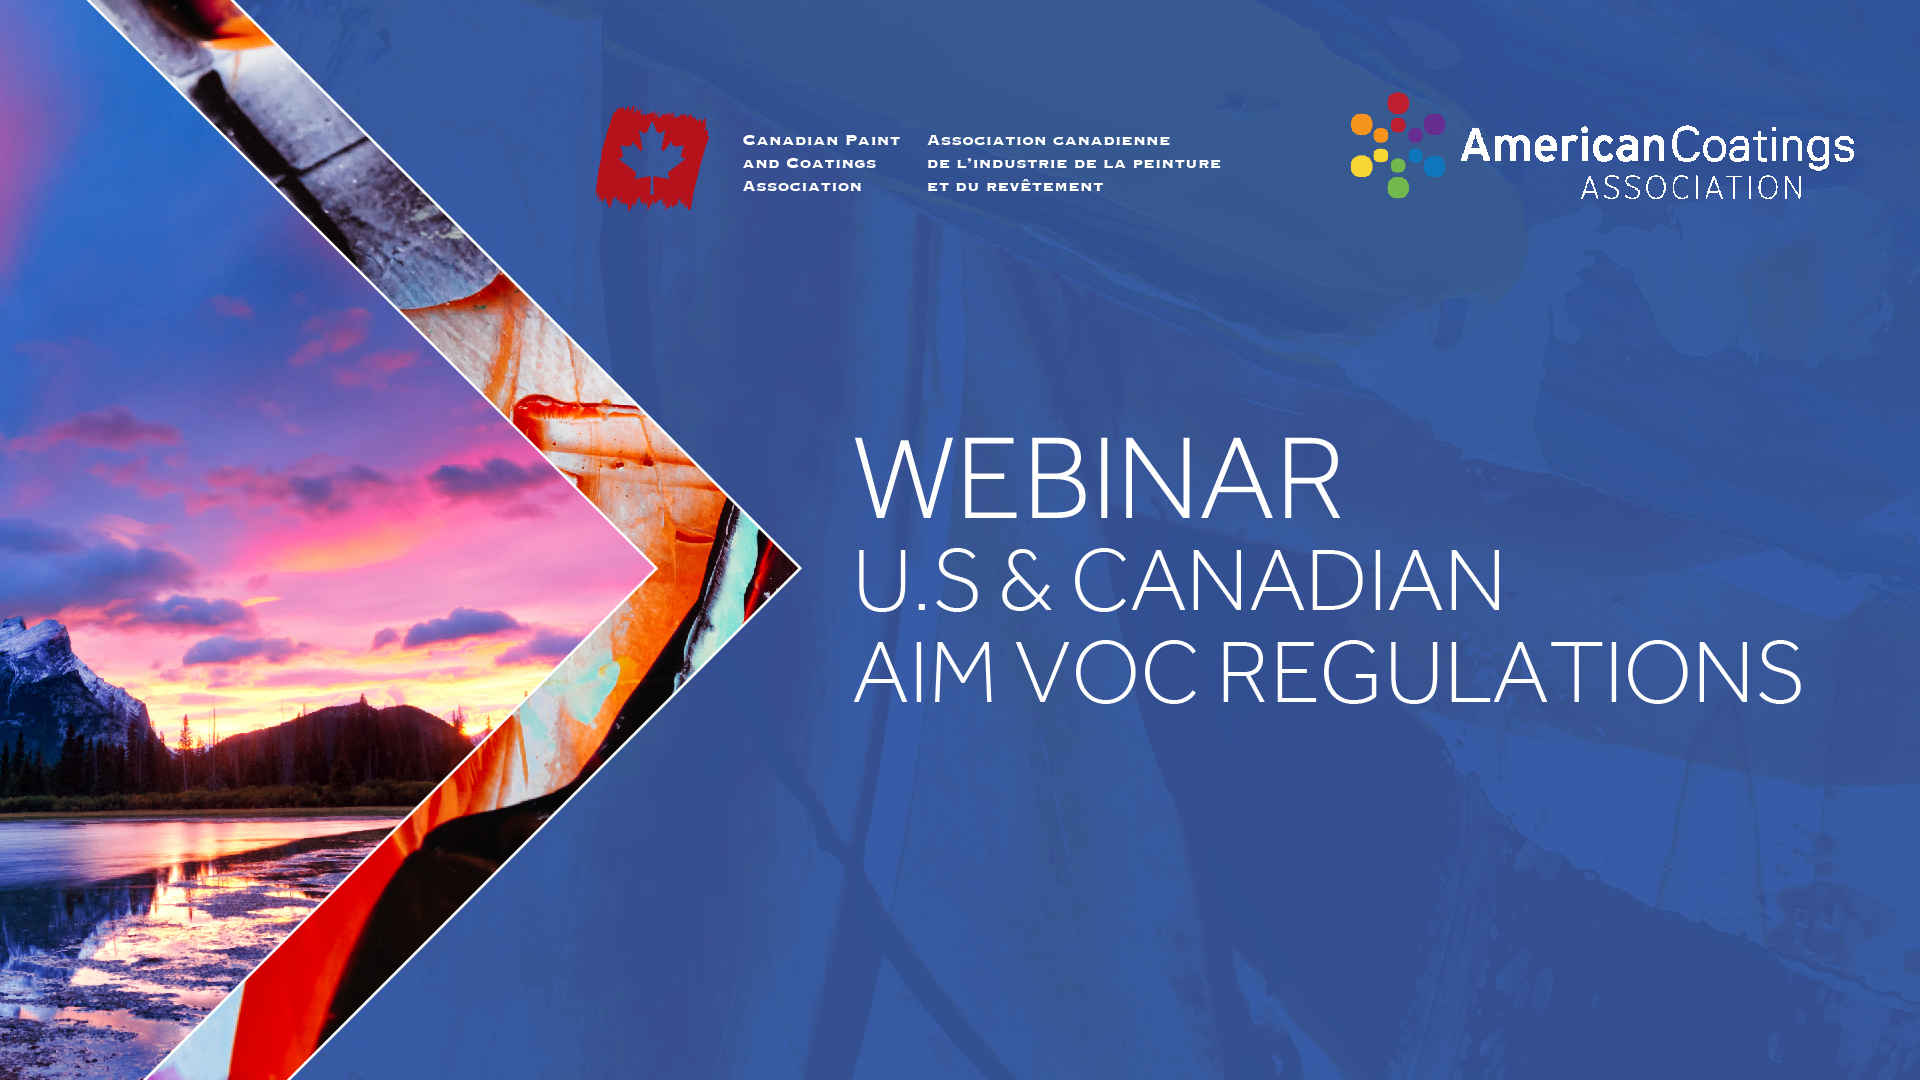 Webinar: U.S and Canadian AIM VOC Regulations